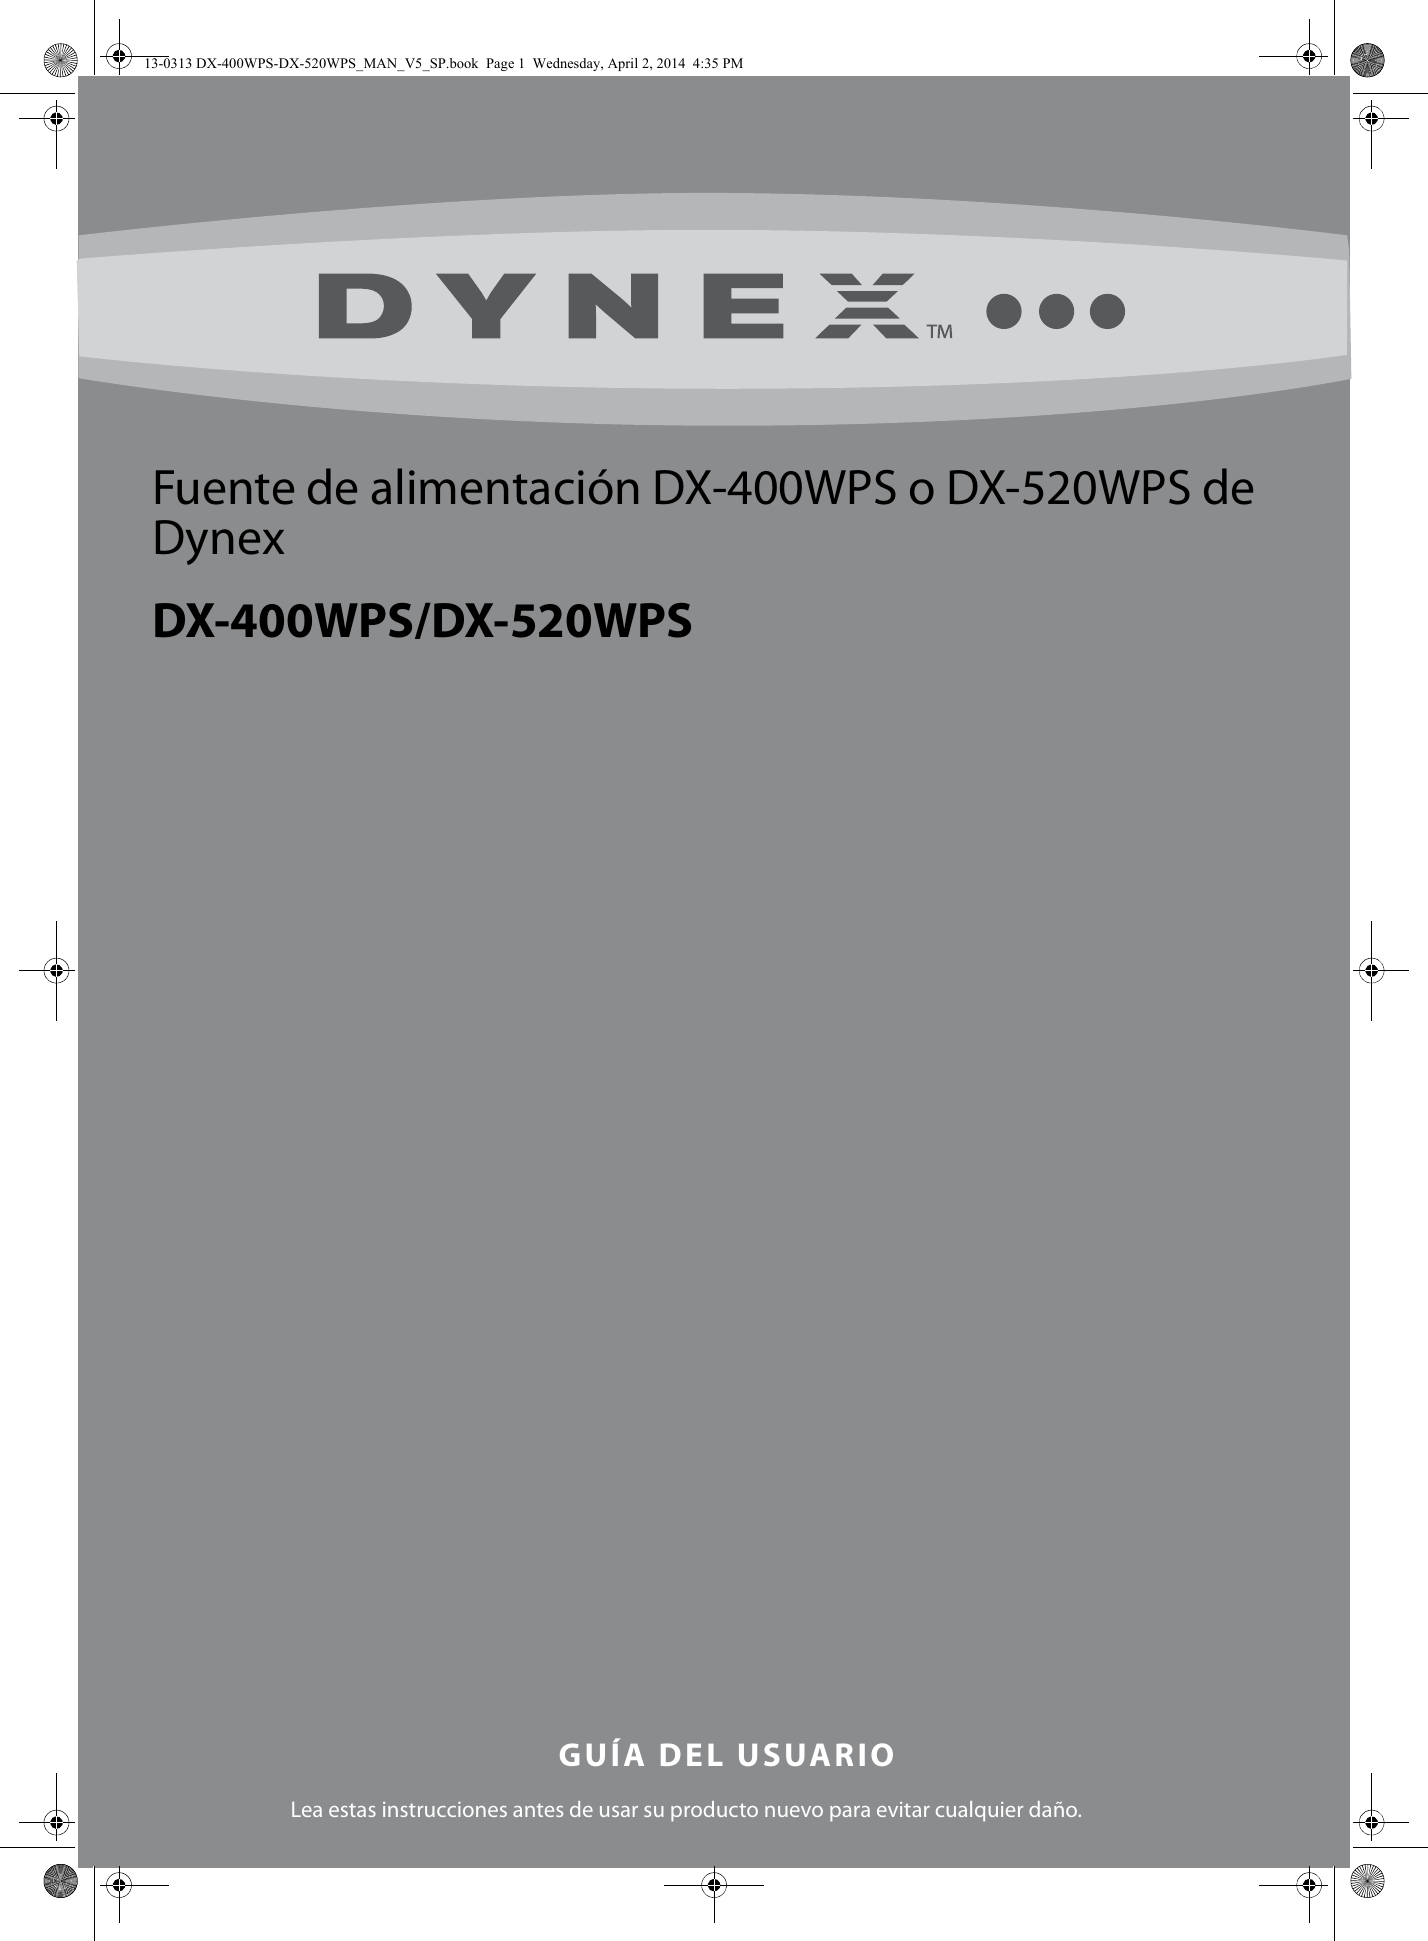 dynex 400 watt atx cpu power supply white users manual 13 0313 dx rh usermanual wiki User Guide Template Quick Reference Guide